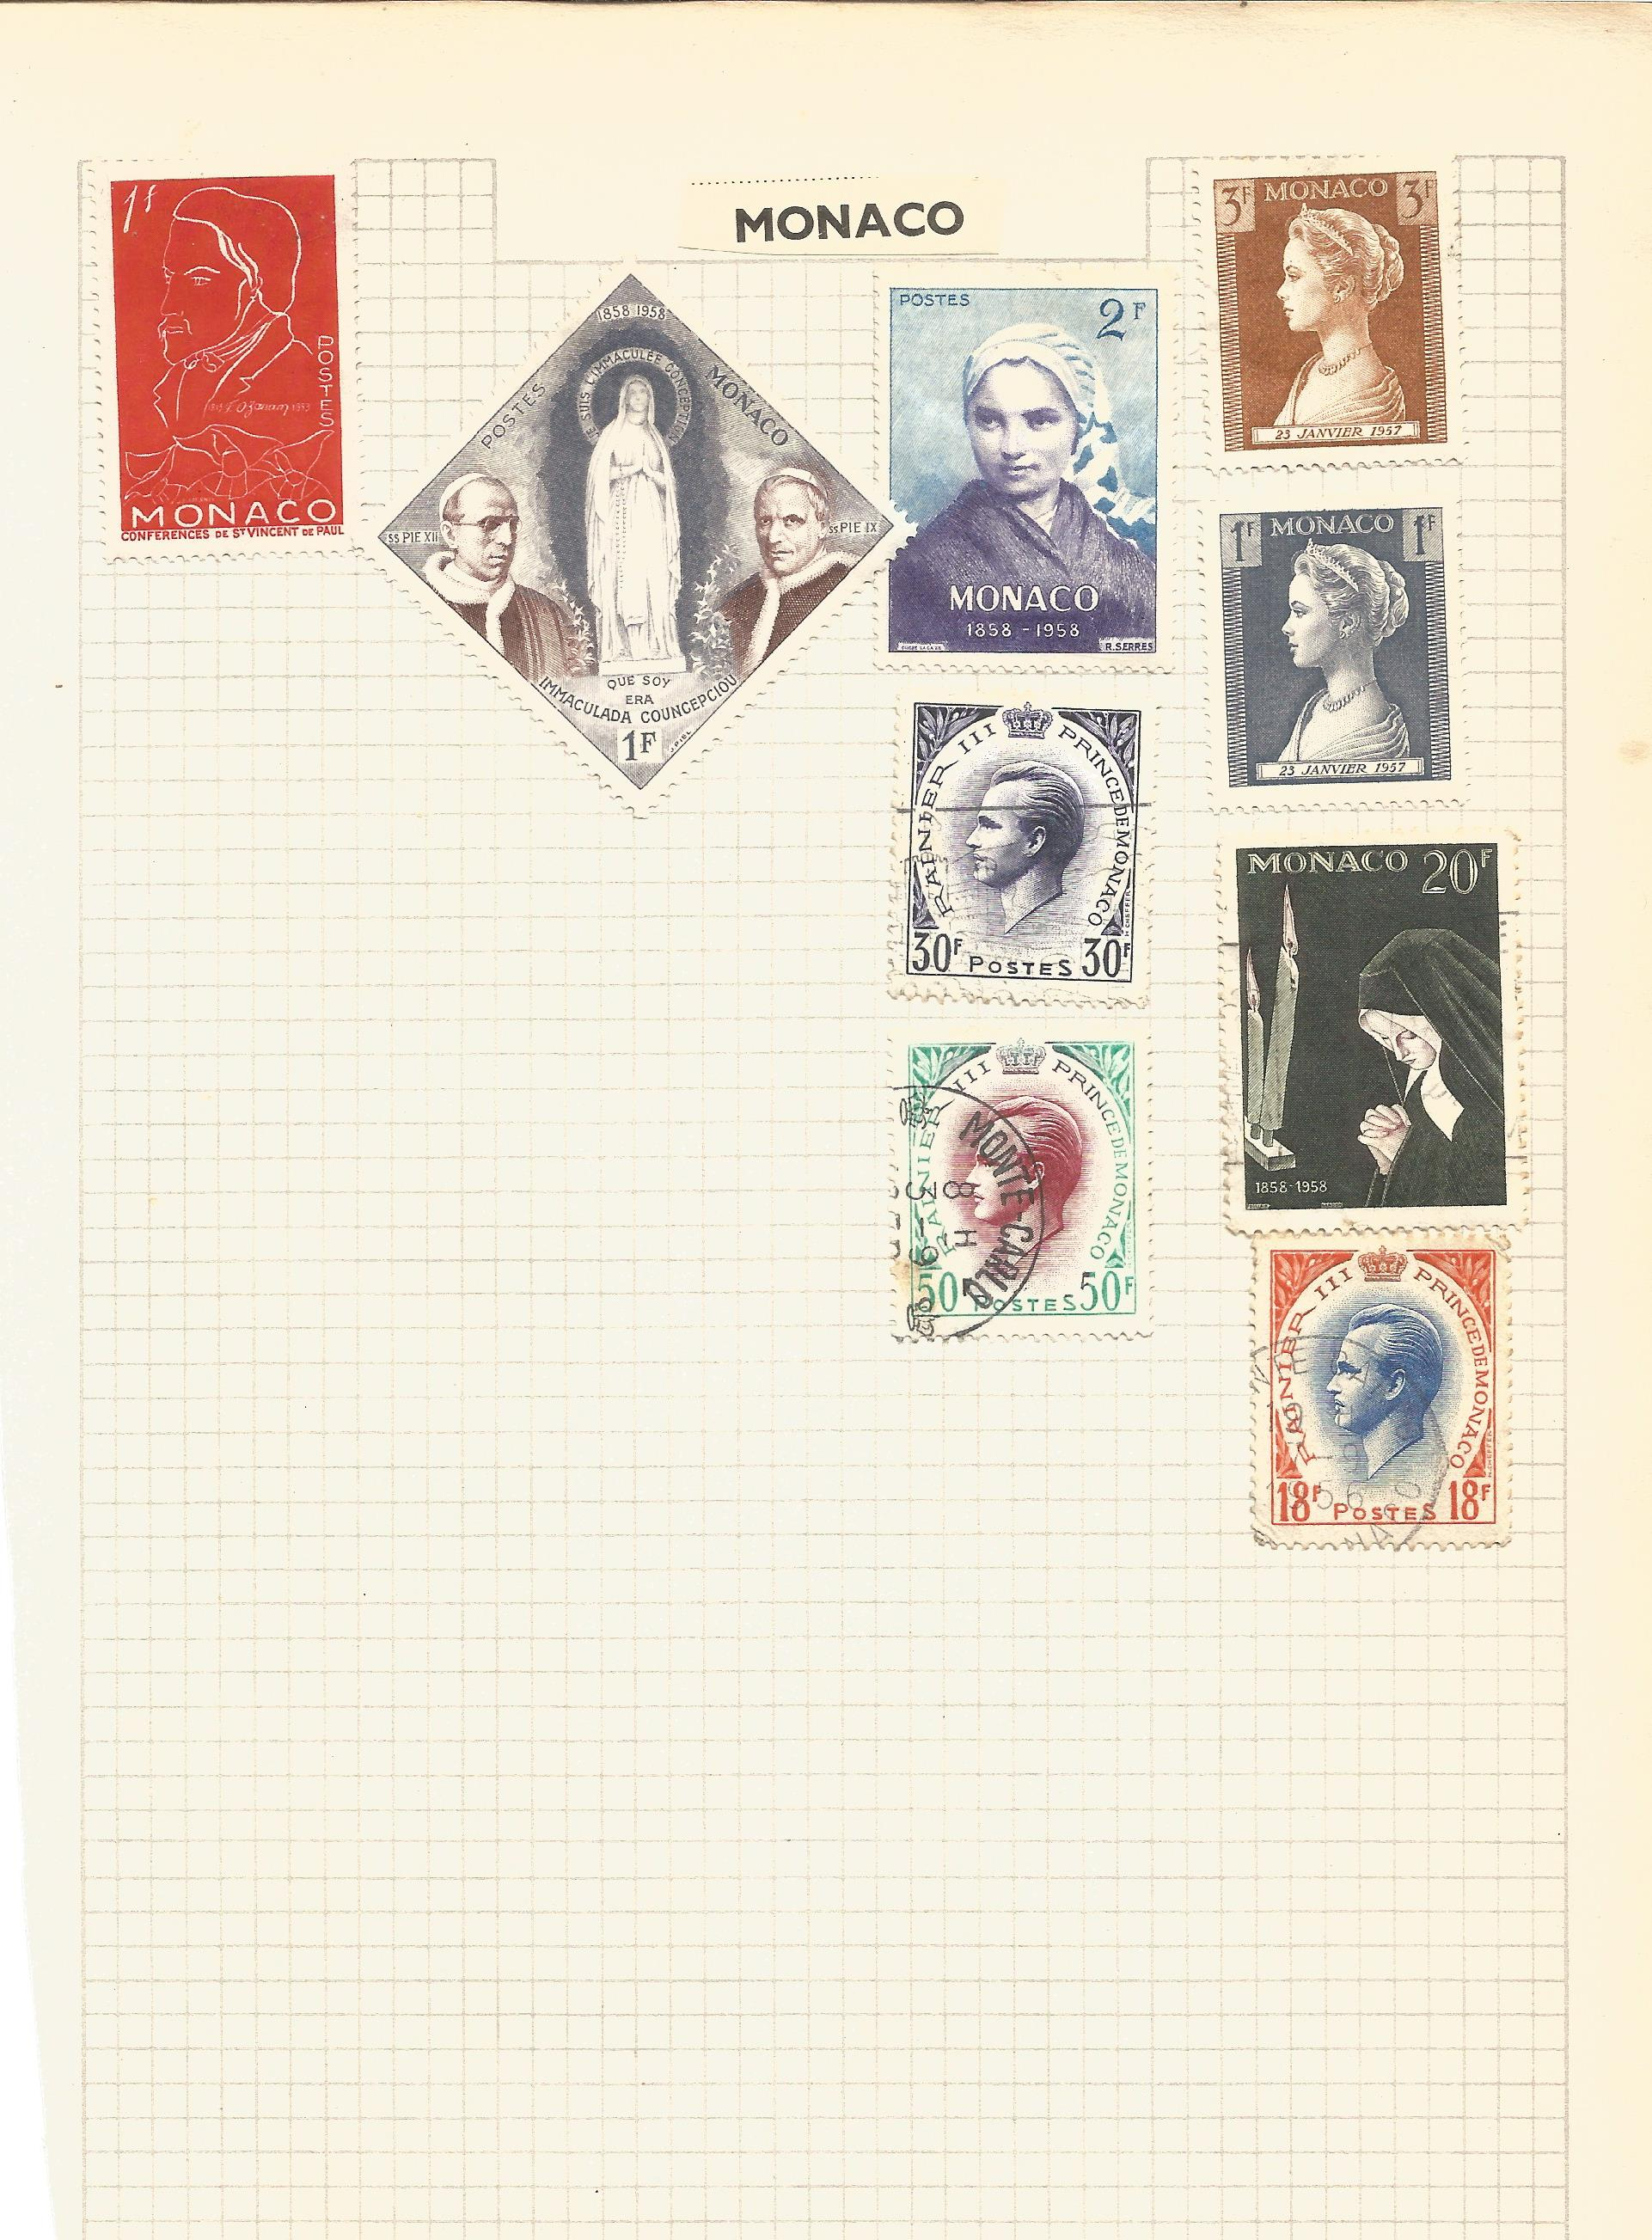 European stamp collection on 4 pages. Includes Monaco, Luxembourg and San Marino. Good condition. We - Image 2 of 4